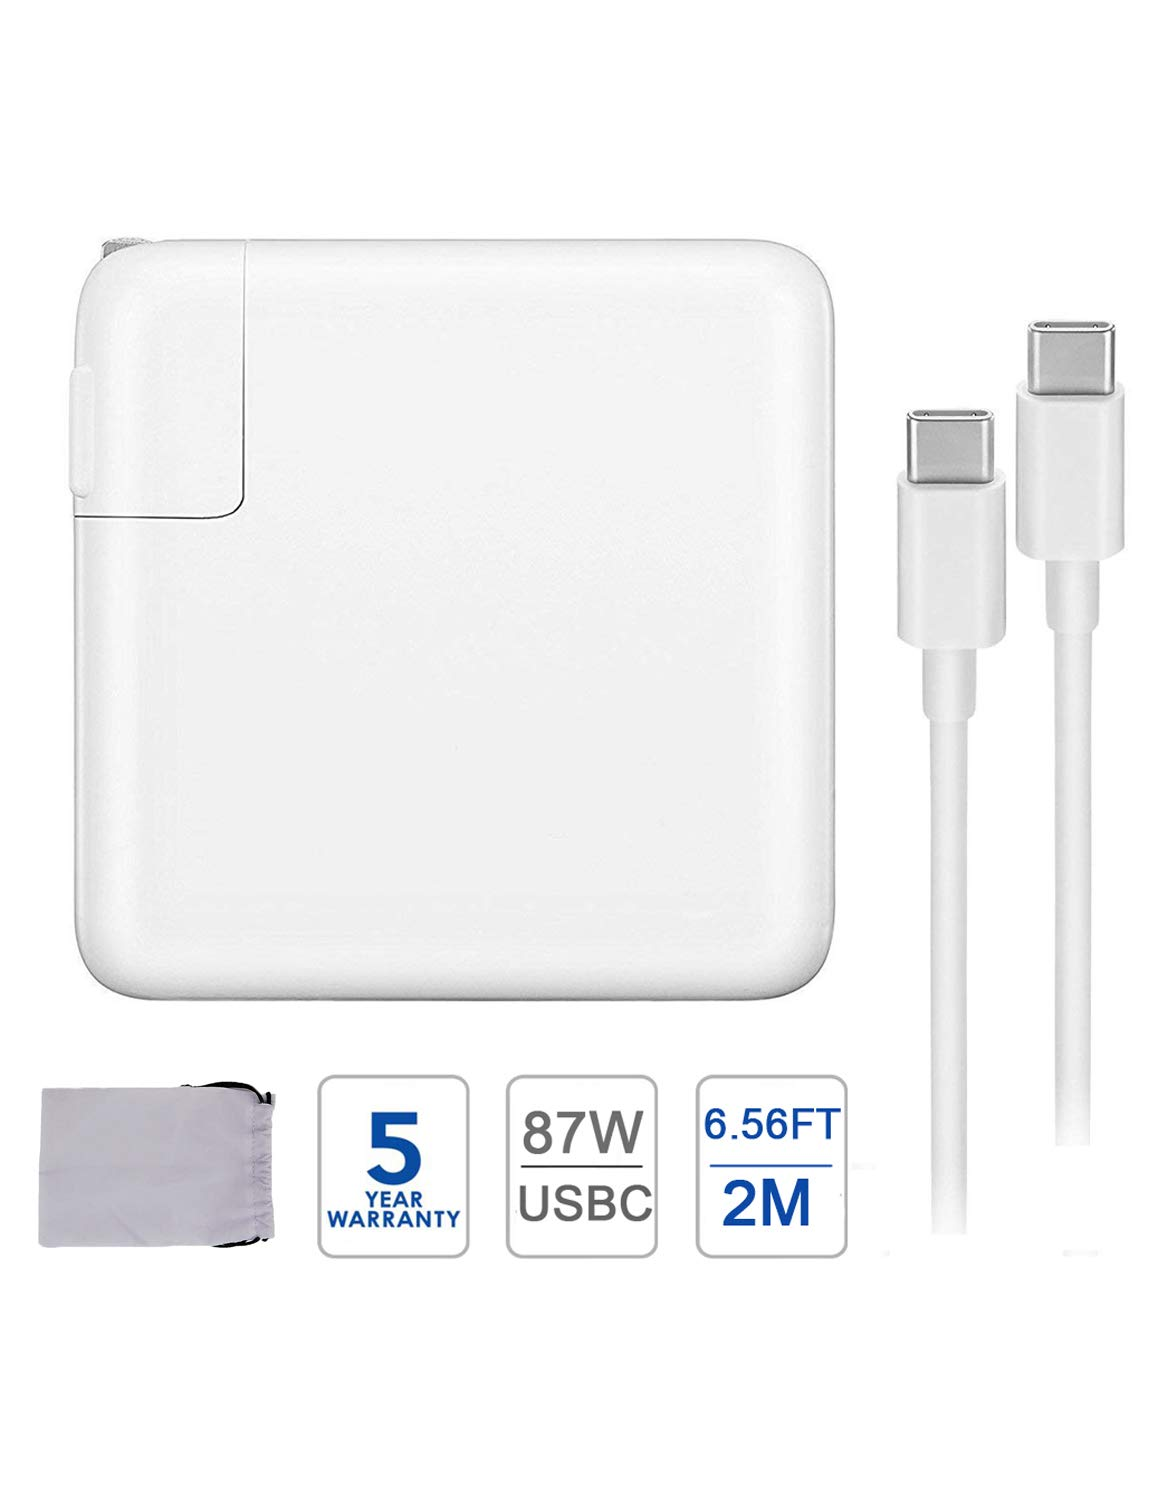 87W USB C Charger Power Adapter for MacBook Pro 15 Inch 13 Inch MacBook 12Inch MacBook Air iPad Pro 2018 2019 Include Charge Cable by iProCharger